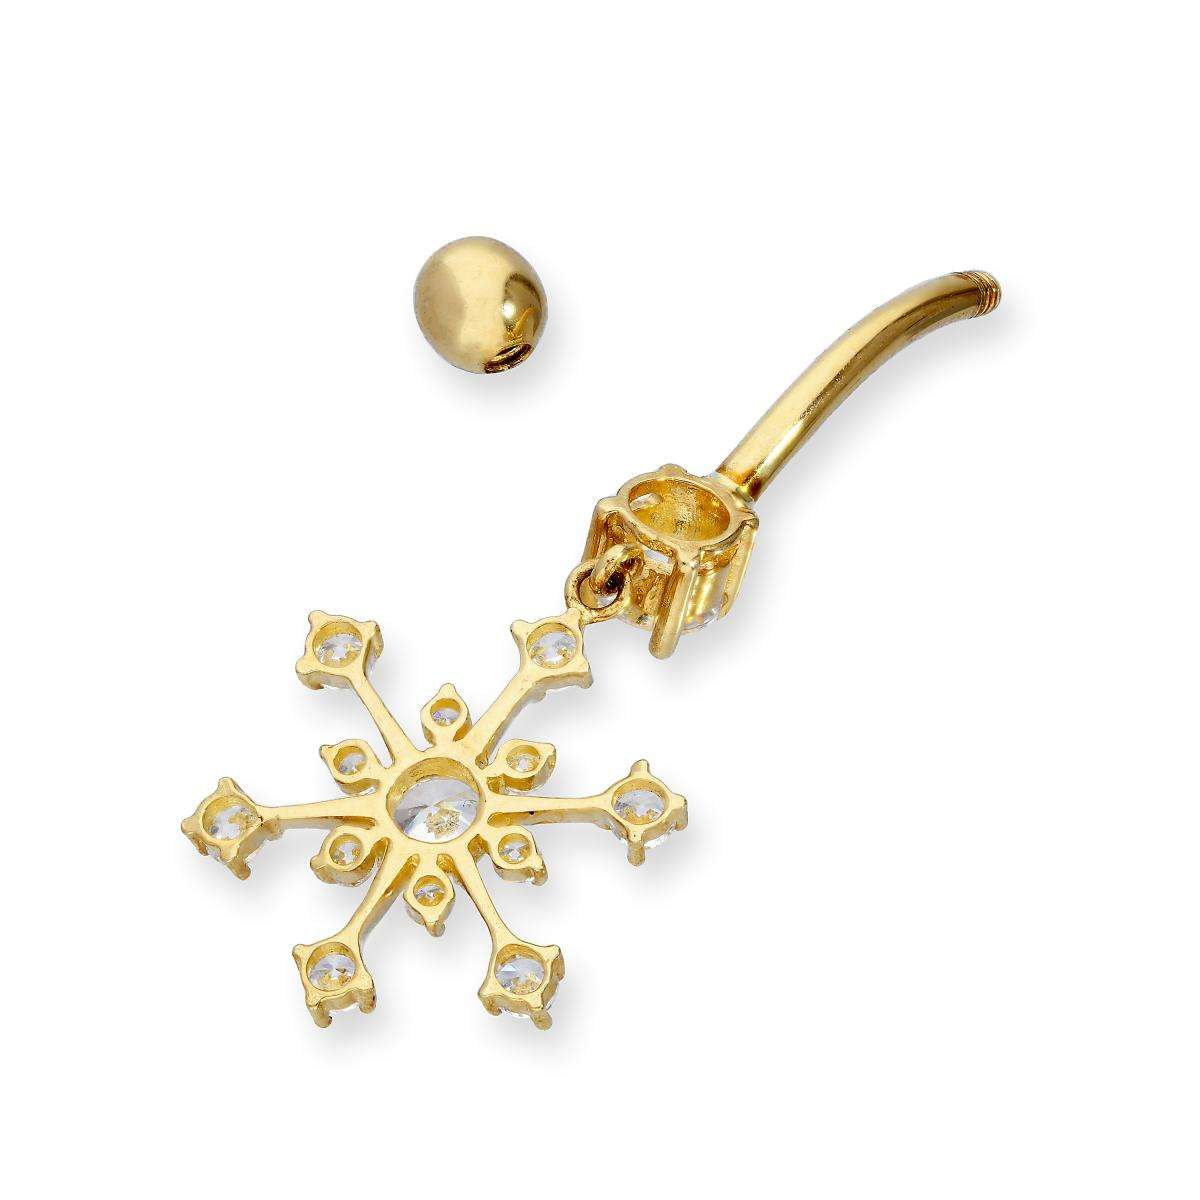 Alterative image for 9ct Gold & CZ Crystal Hanging Snowflake Ball End Belly Bar